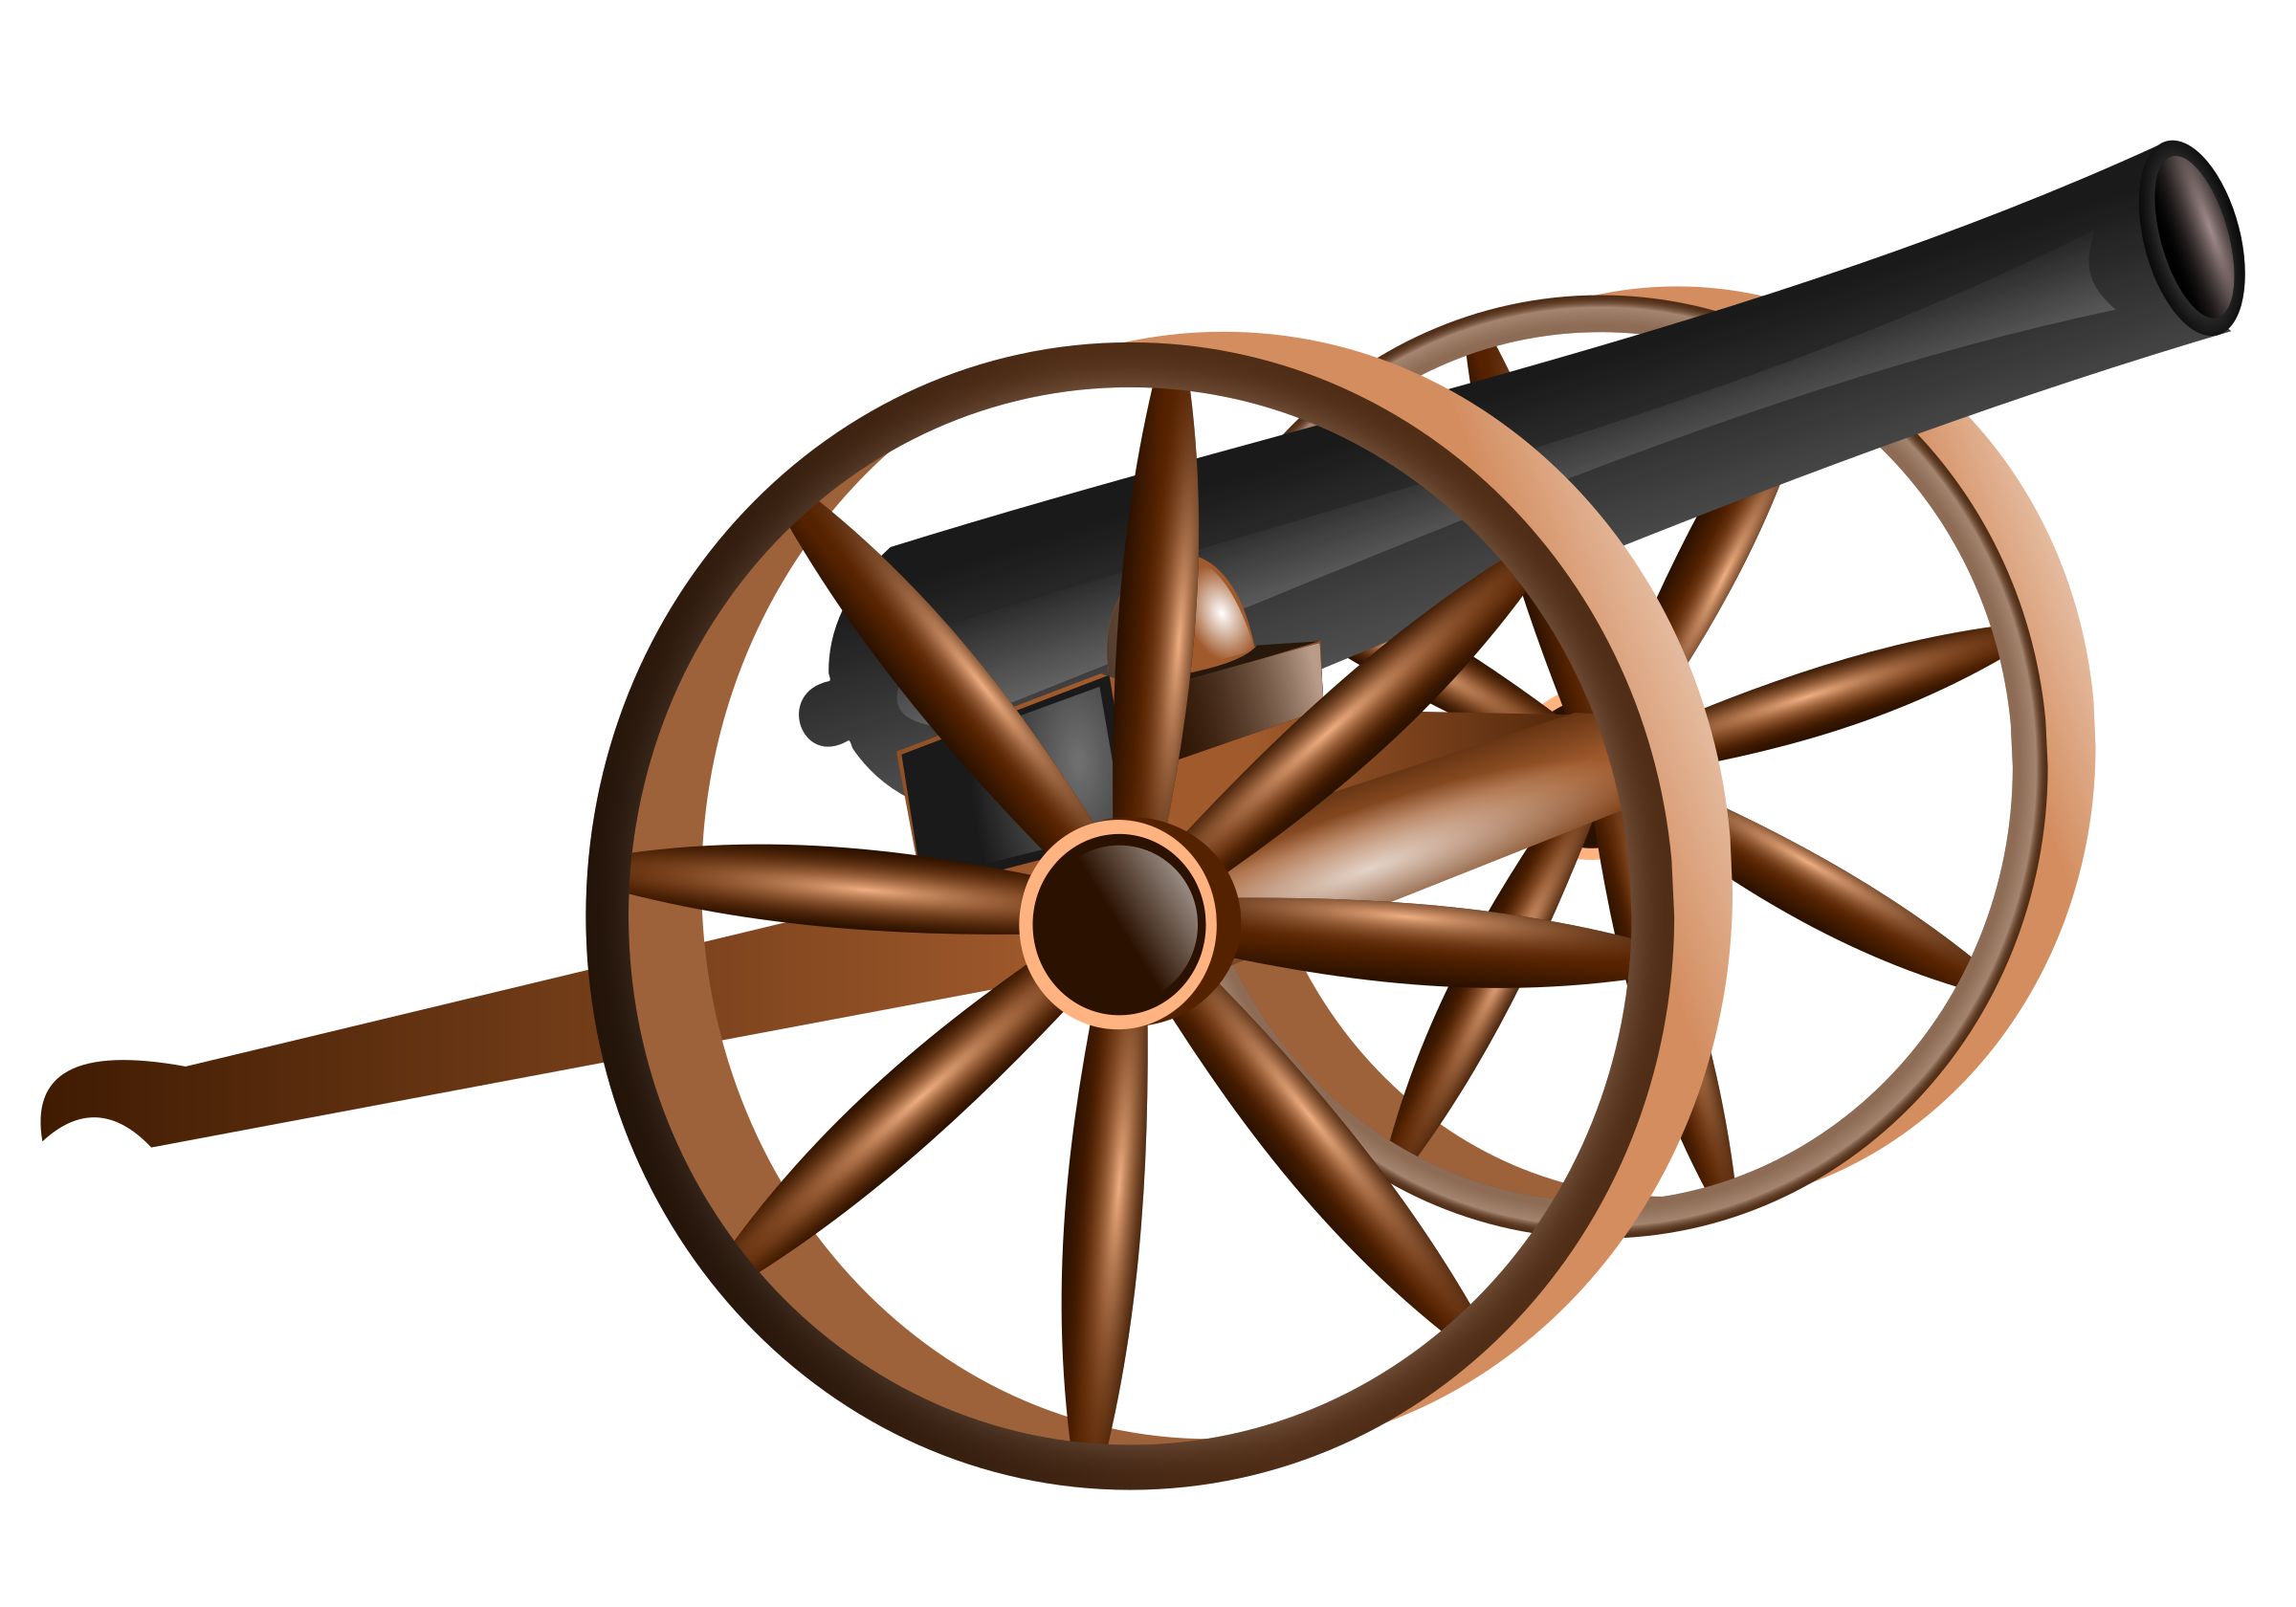 cannon by bkenned5